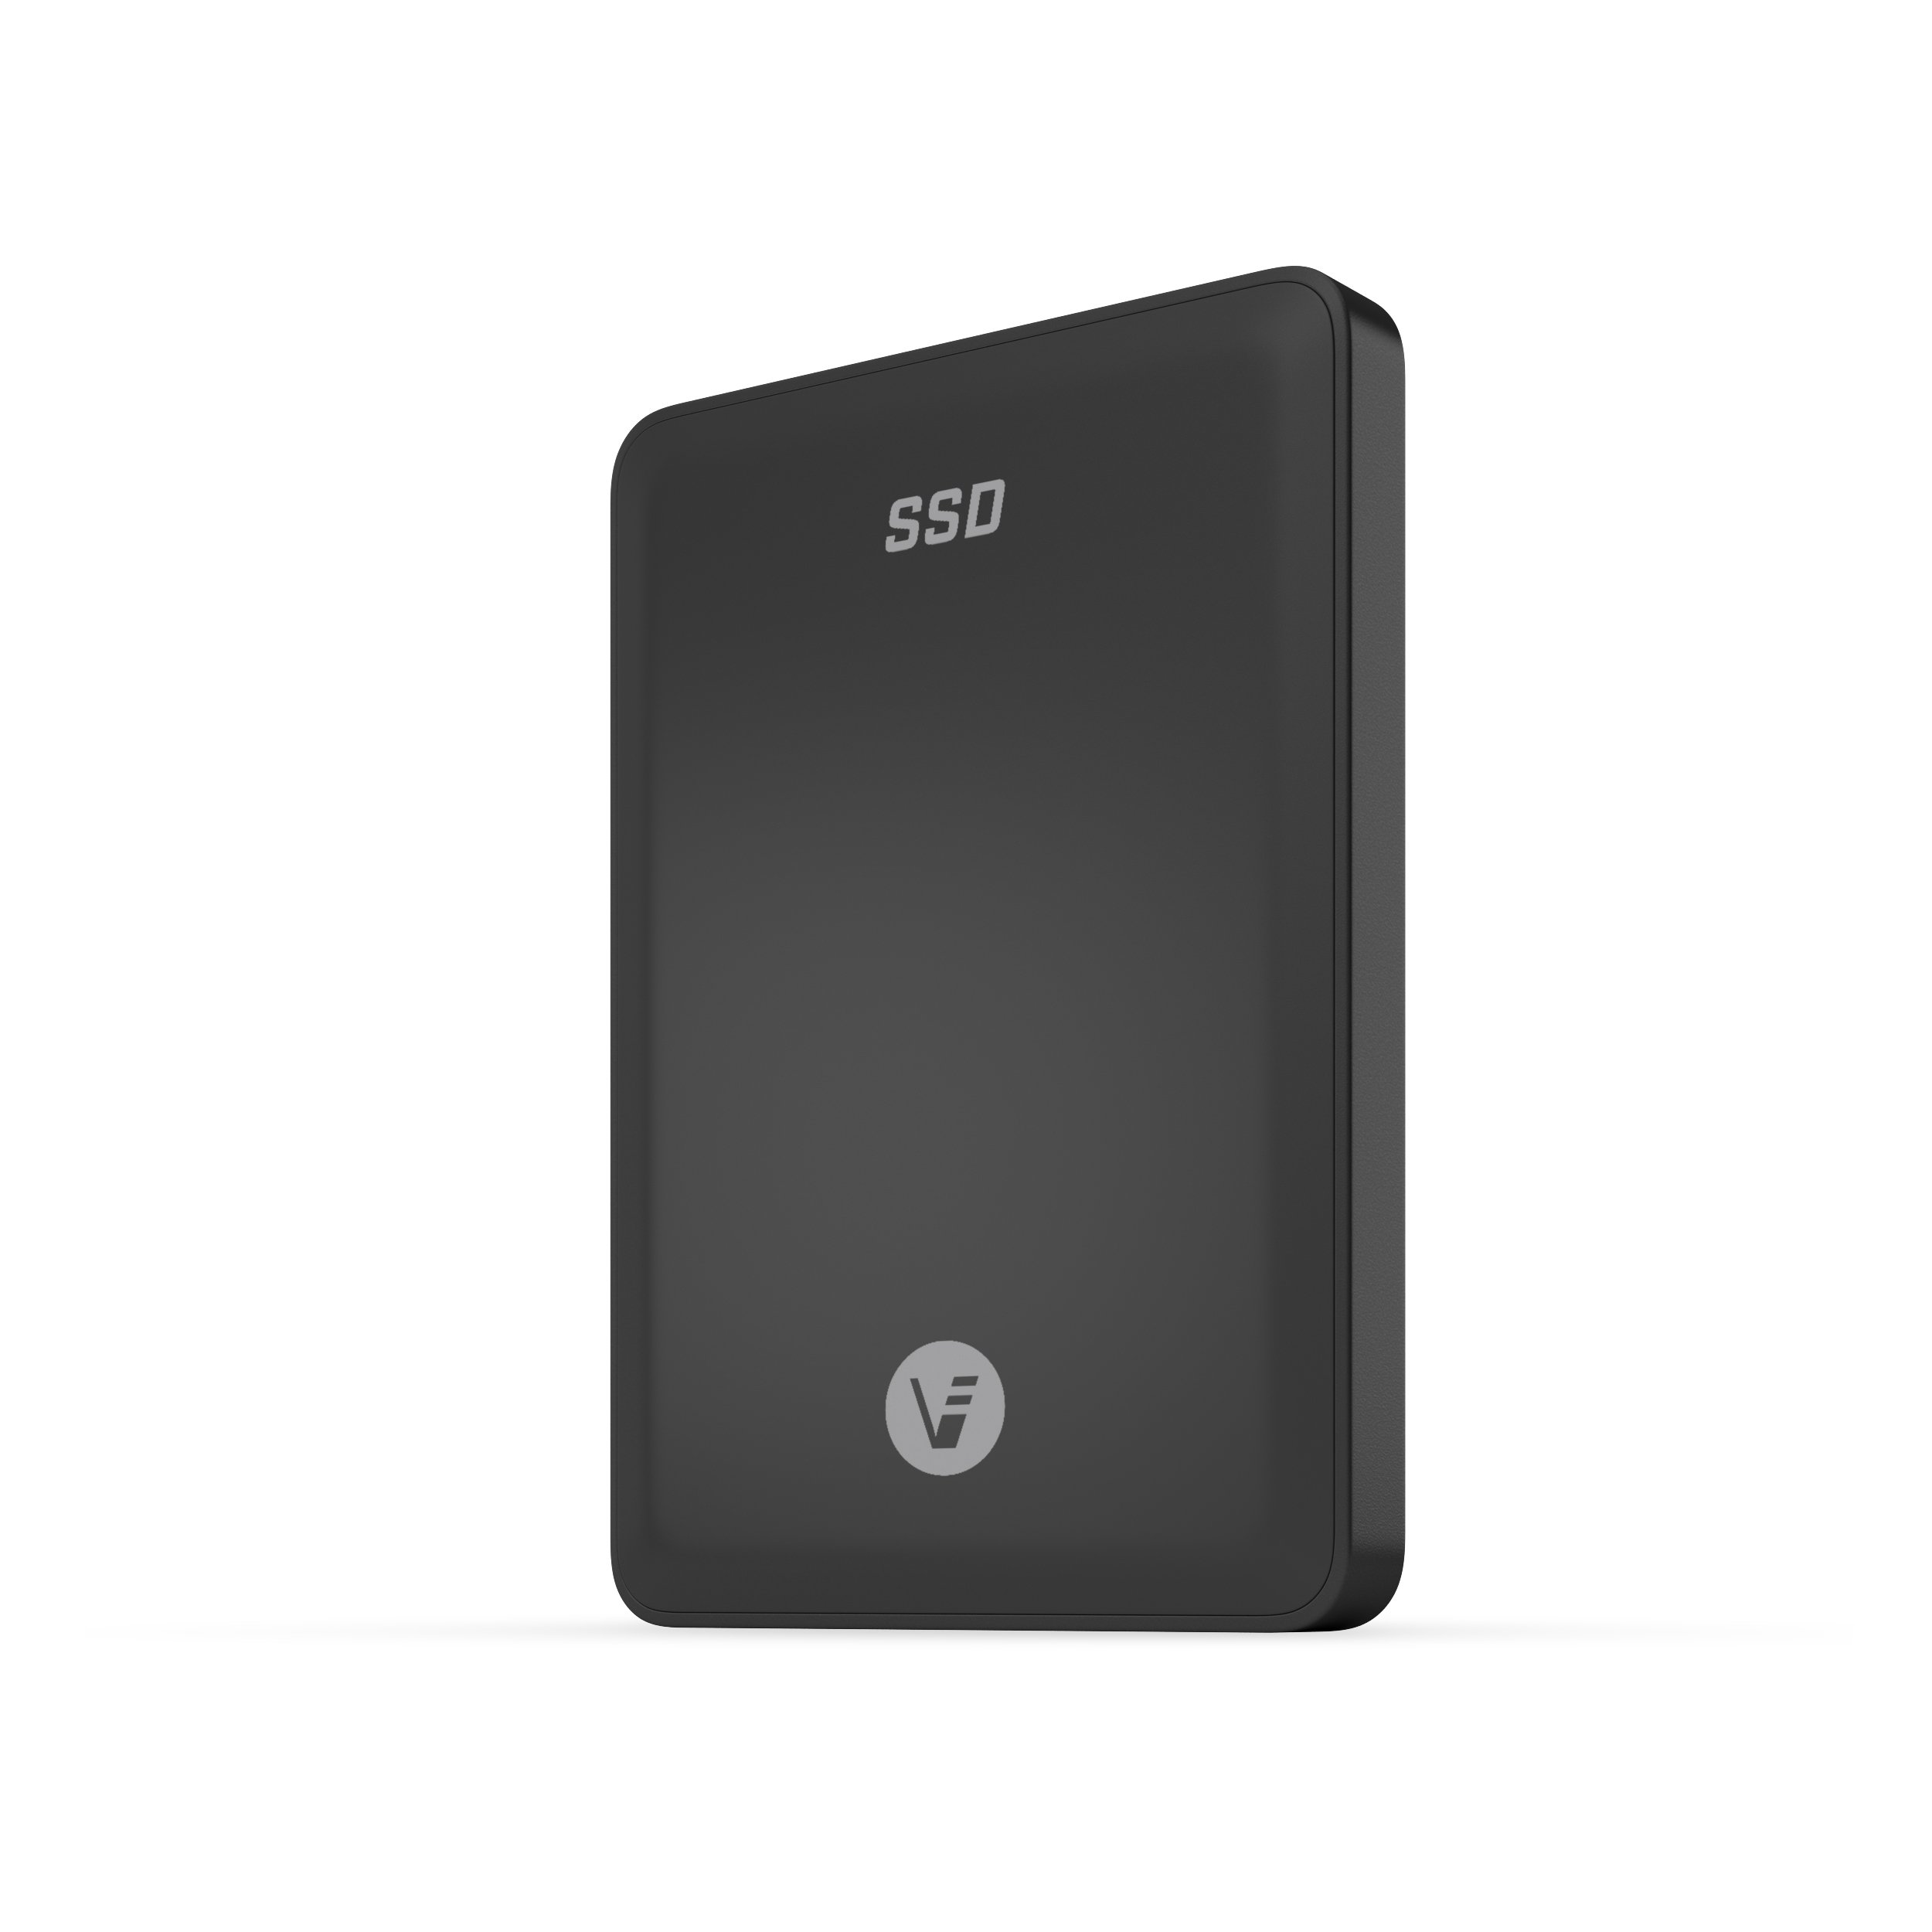 VectoTech Rapid 2TB External SSD USB 3.0 Portable Solid State Drive